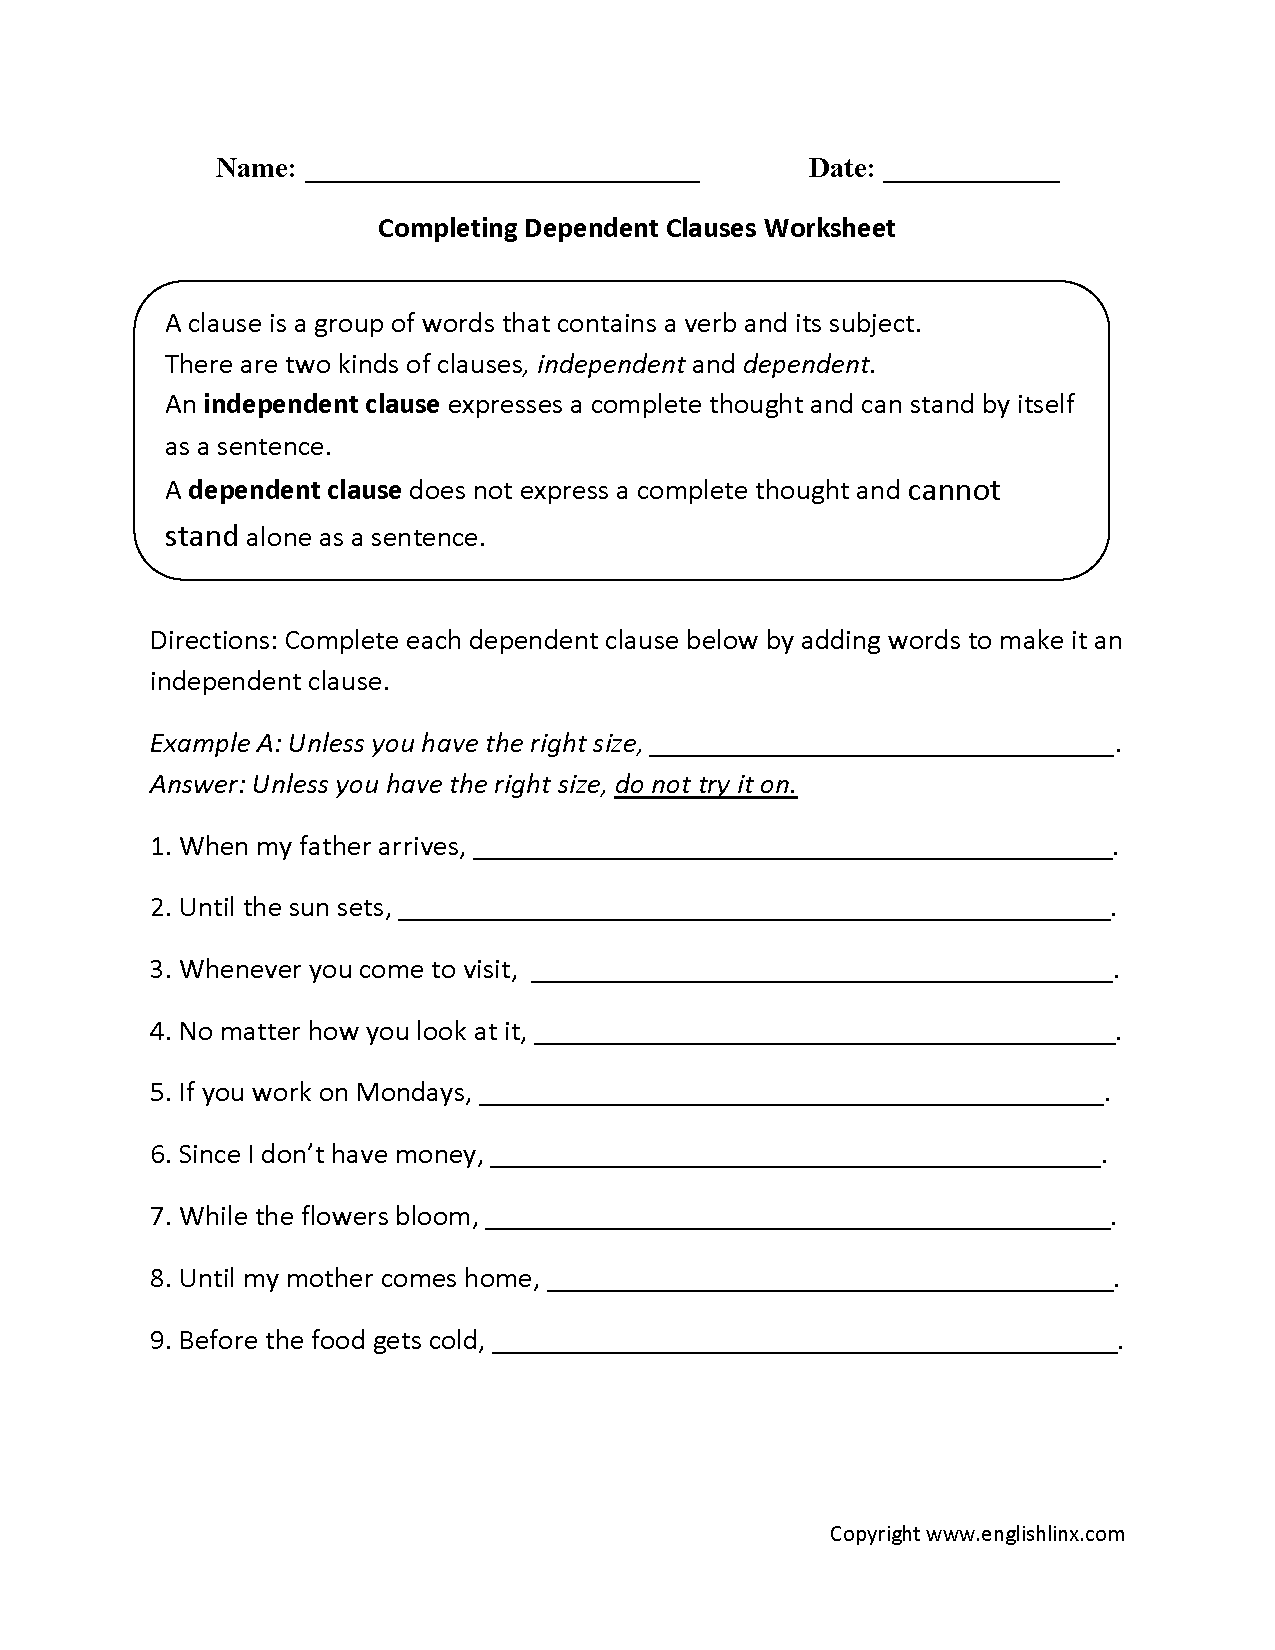 Completing Dependent Clauses Worksheet